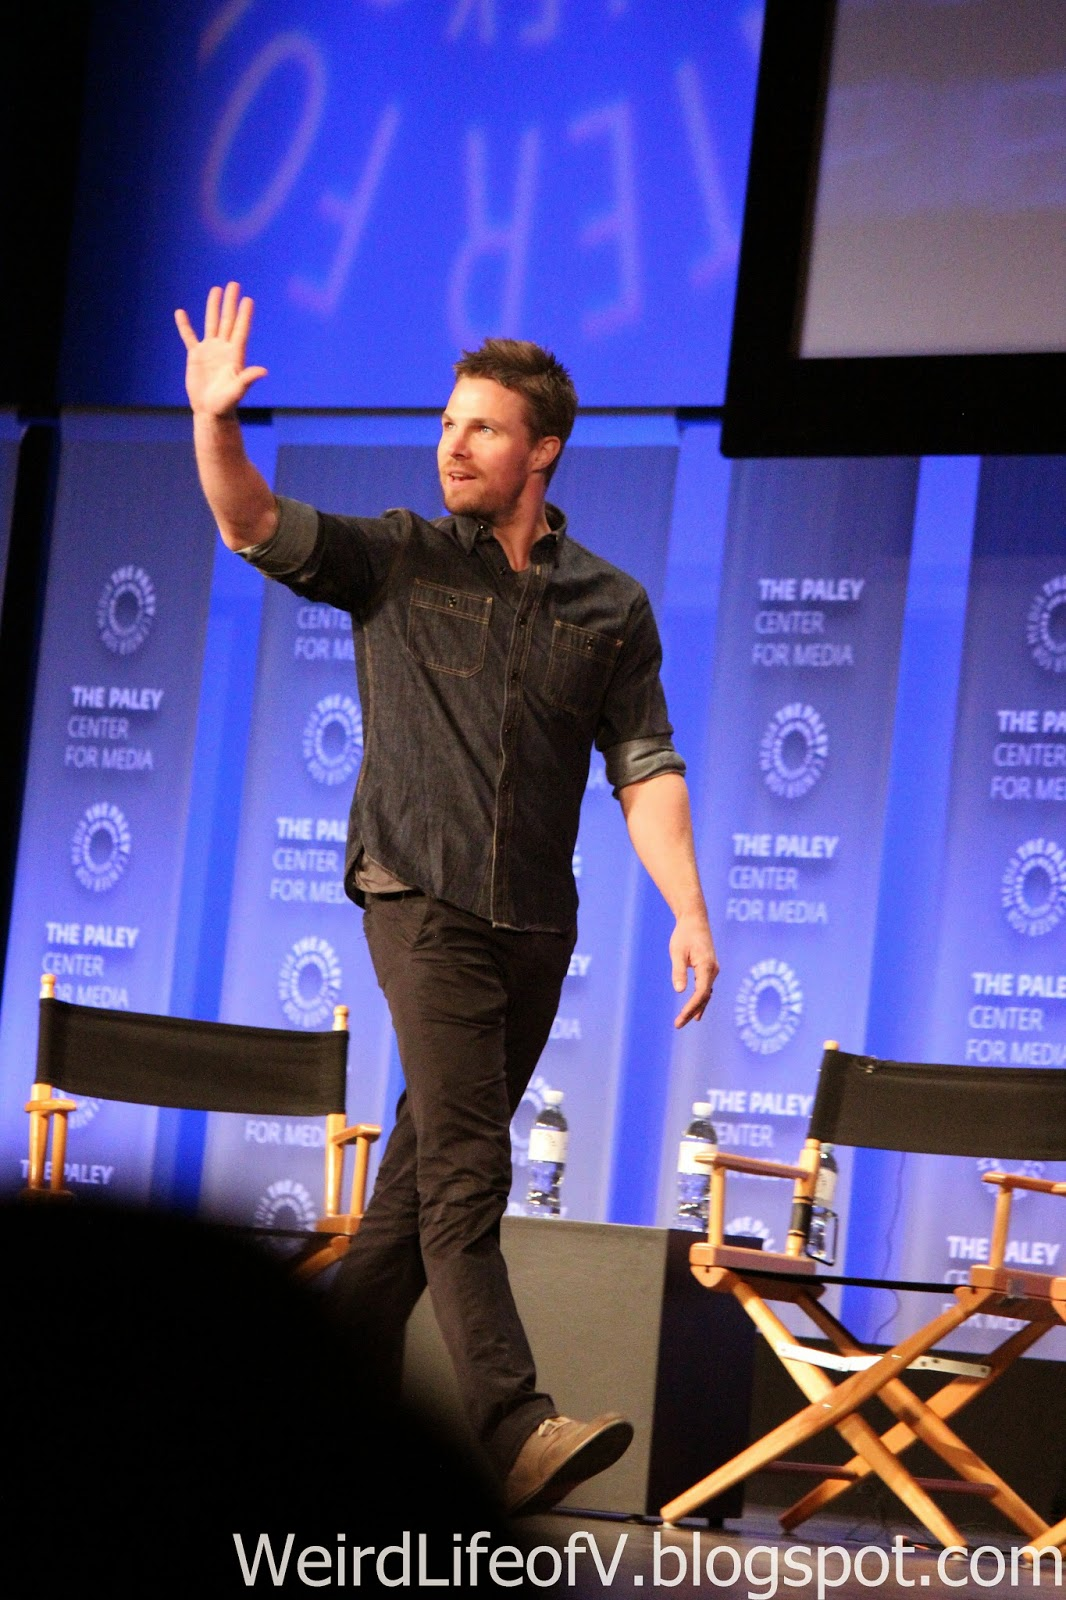 Stephen Amell walking on stage